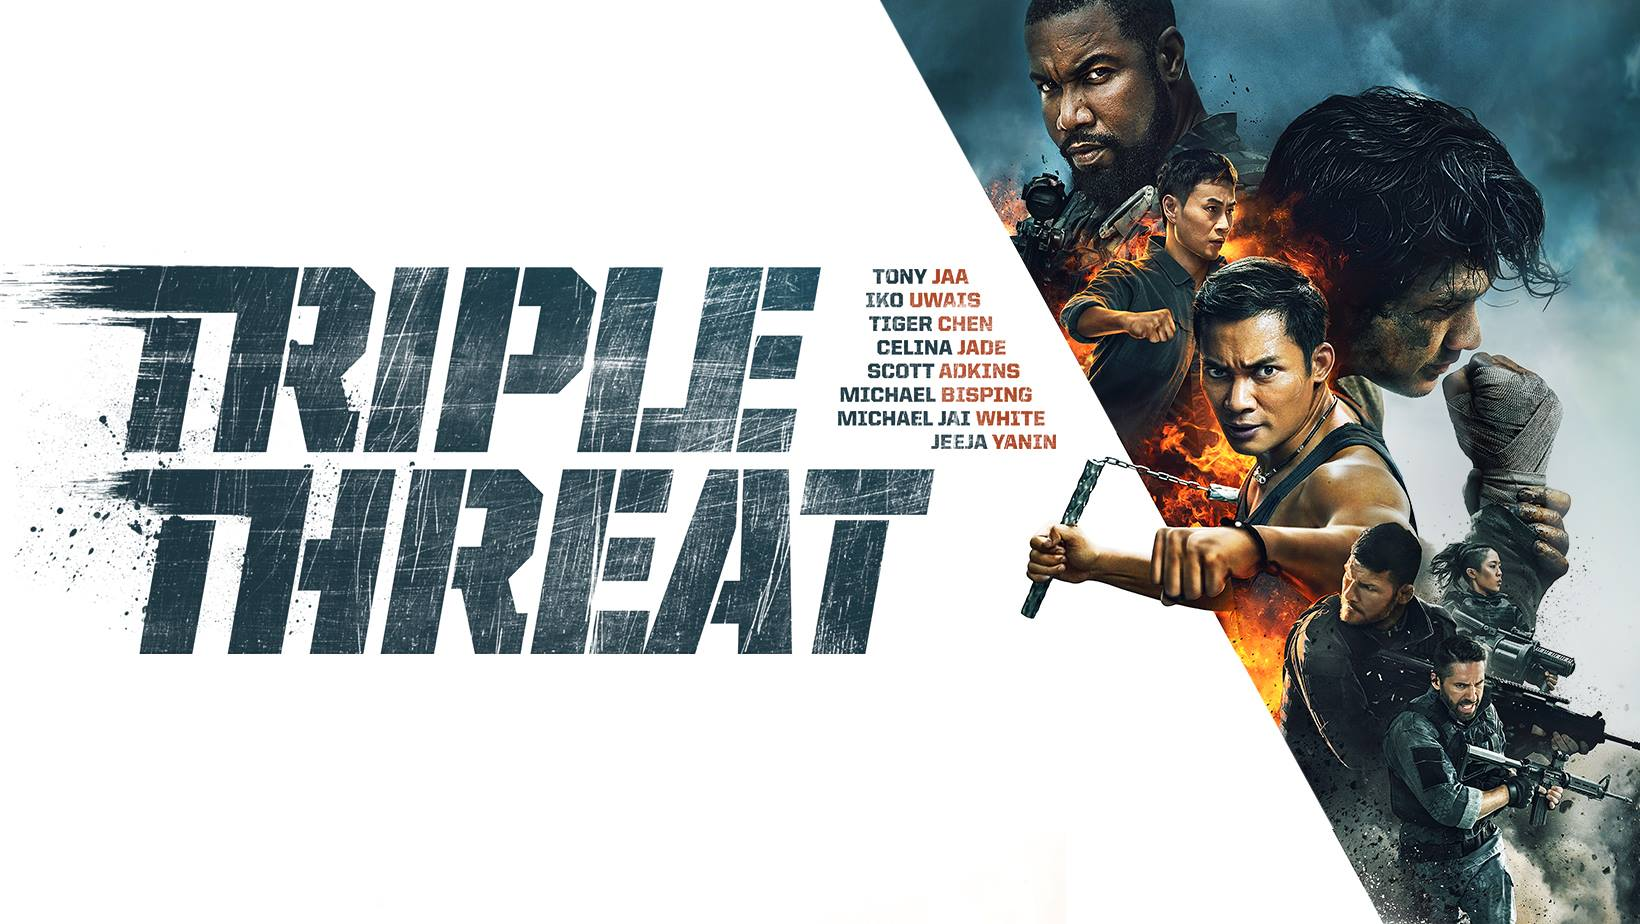 Triple x full movie online